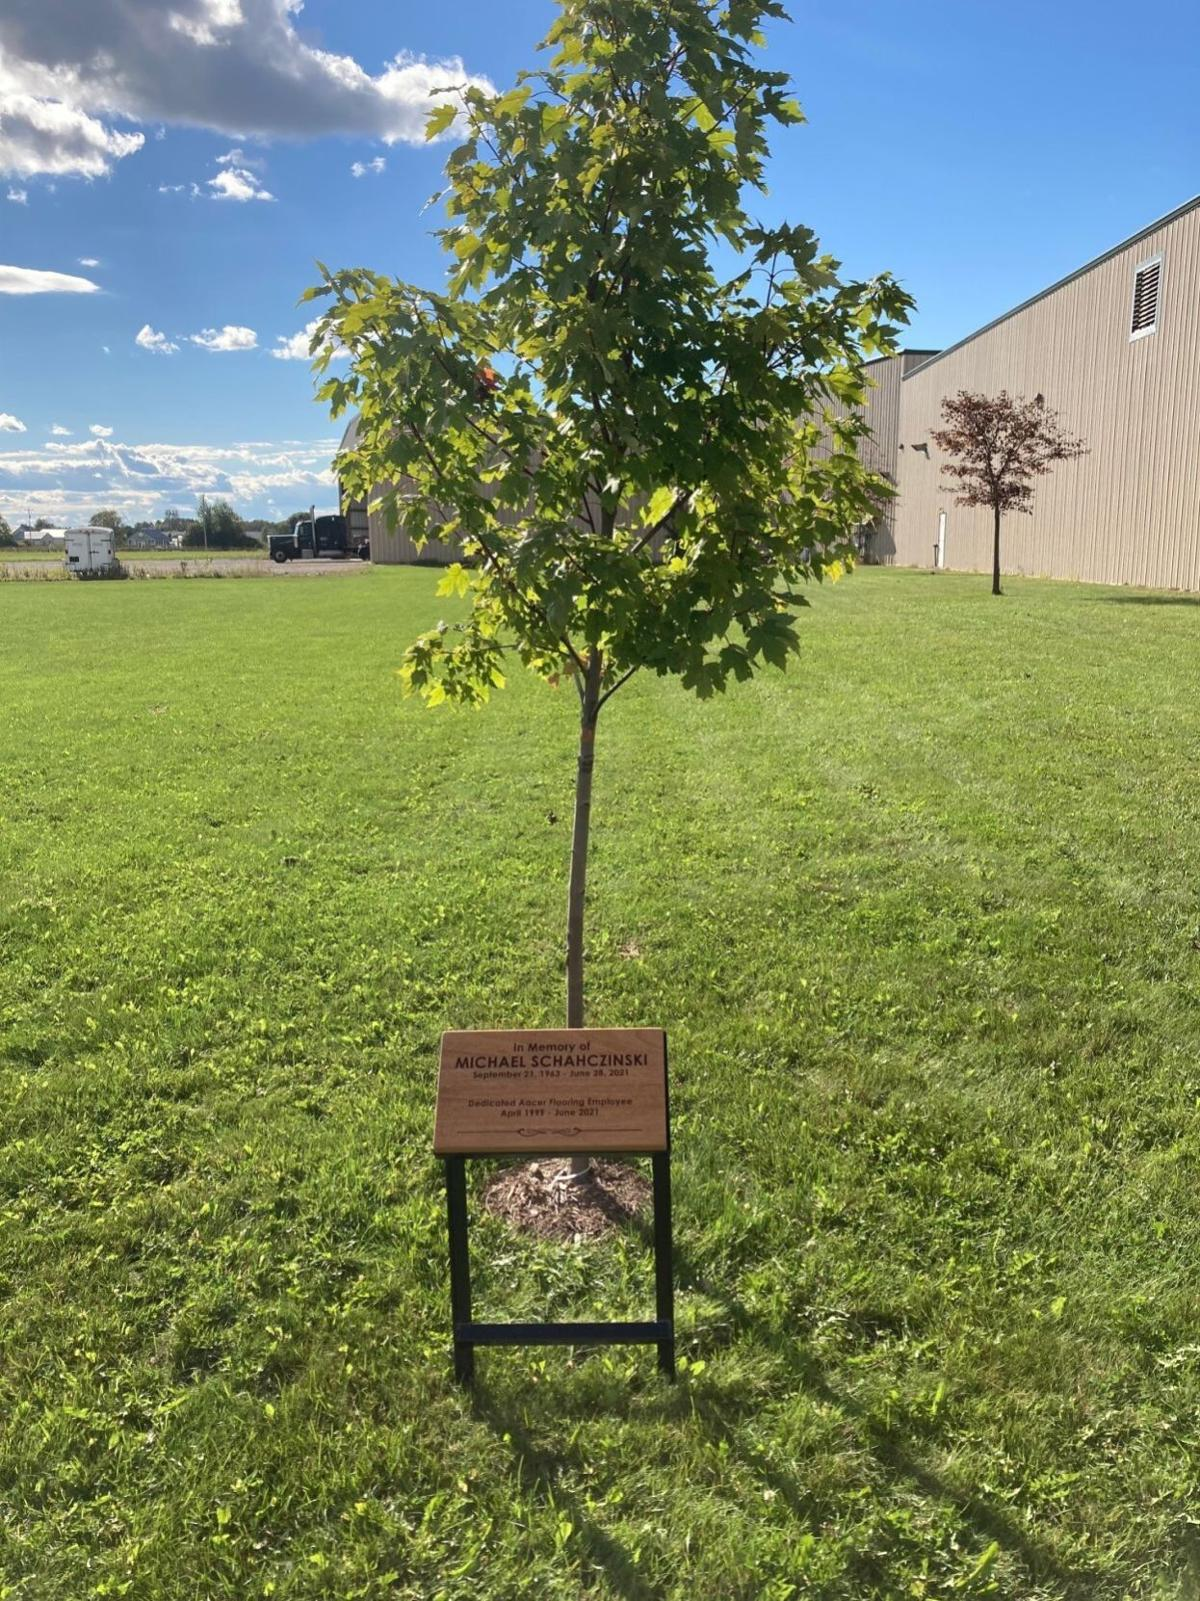 Tree planted with plaque in memory of Michael Schahczinski